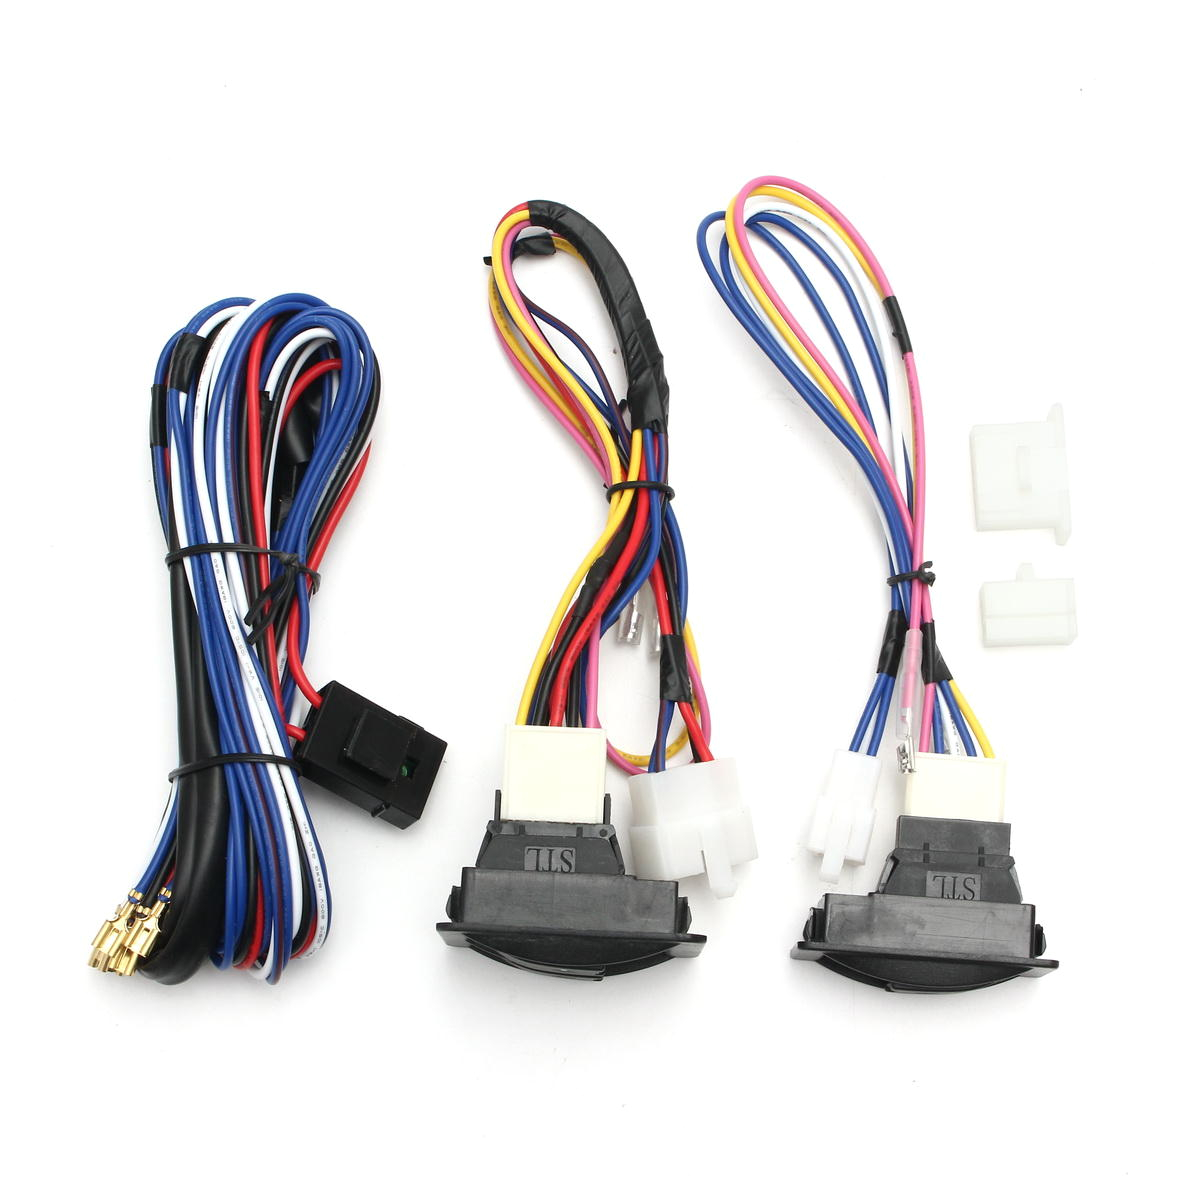 6pcs 12v universal power window switch kits with installation wiring harness cod